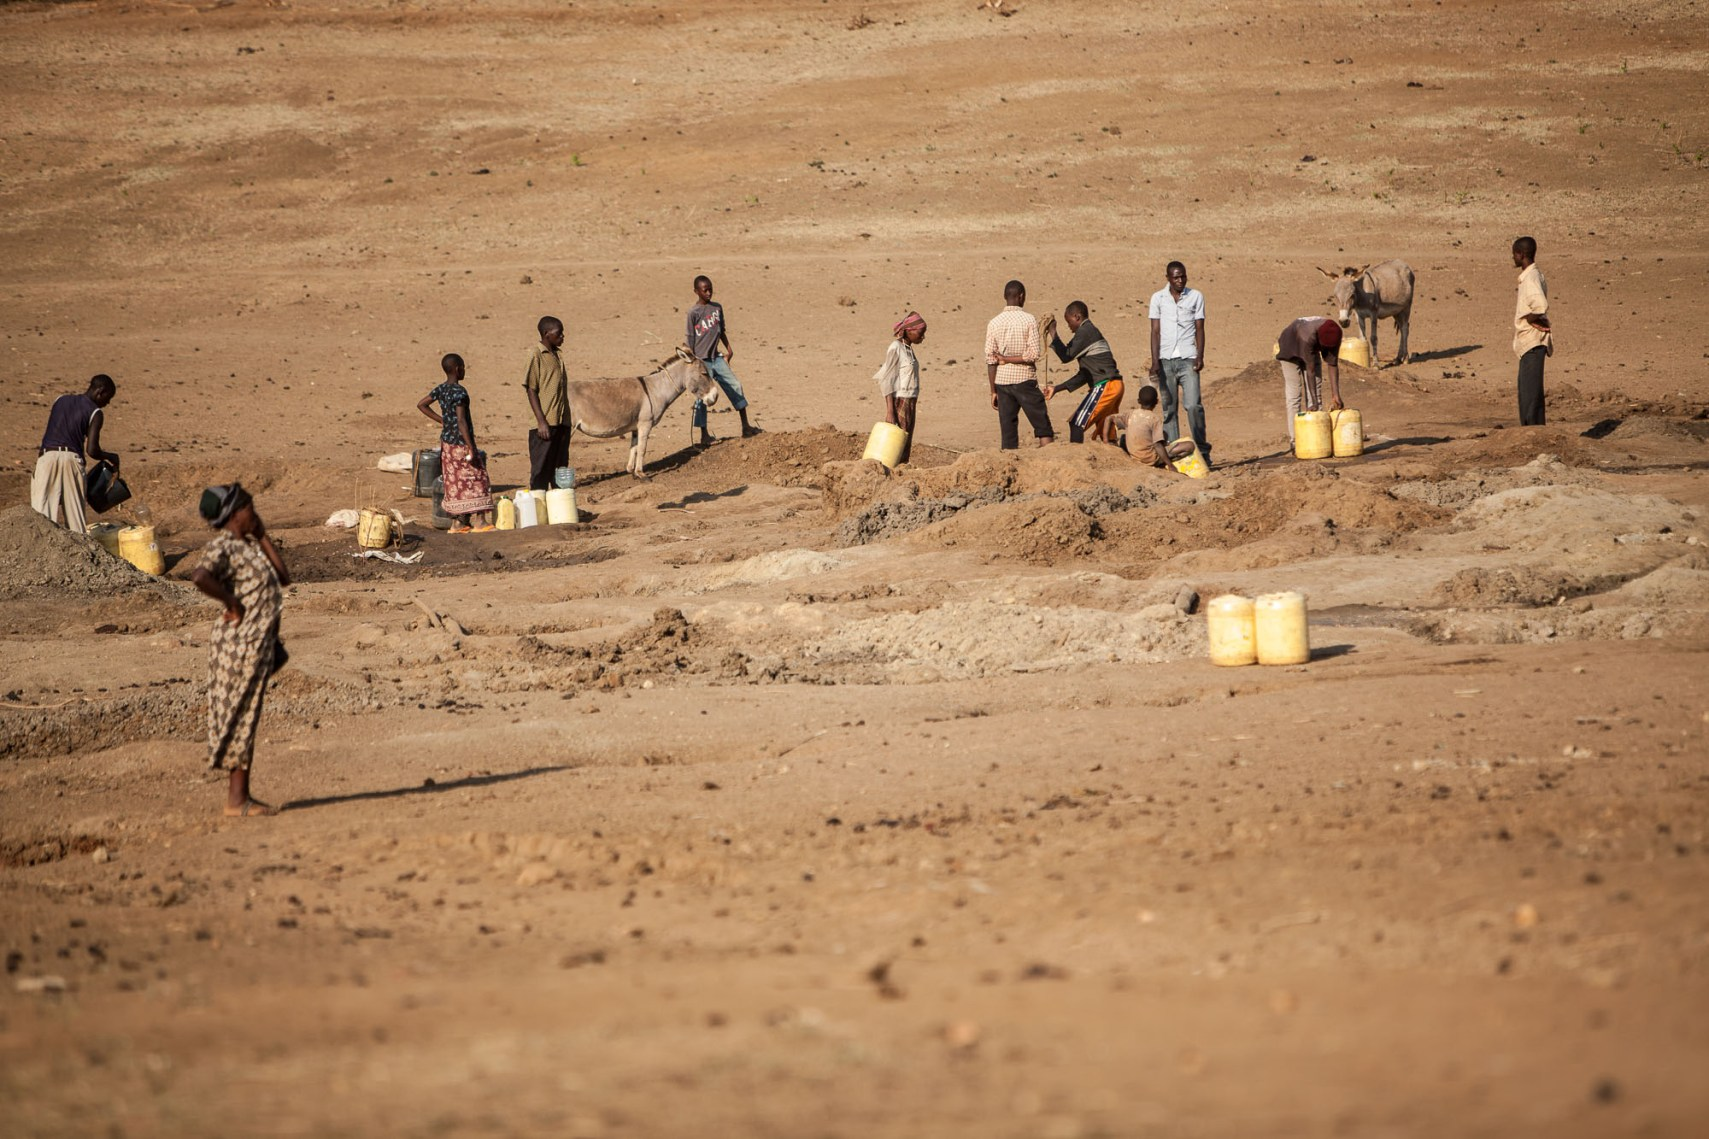 Residents dig in a dry riverbed to access water in Migwani, Kenya.